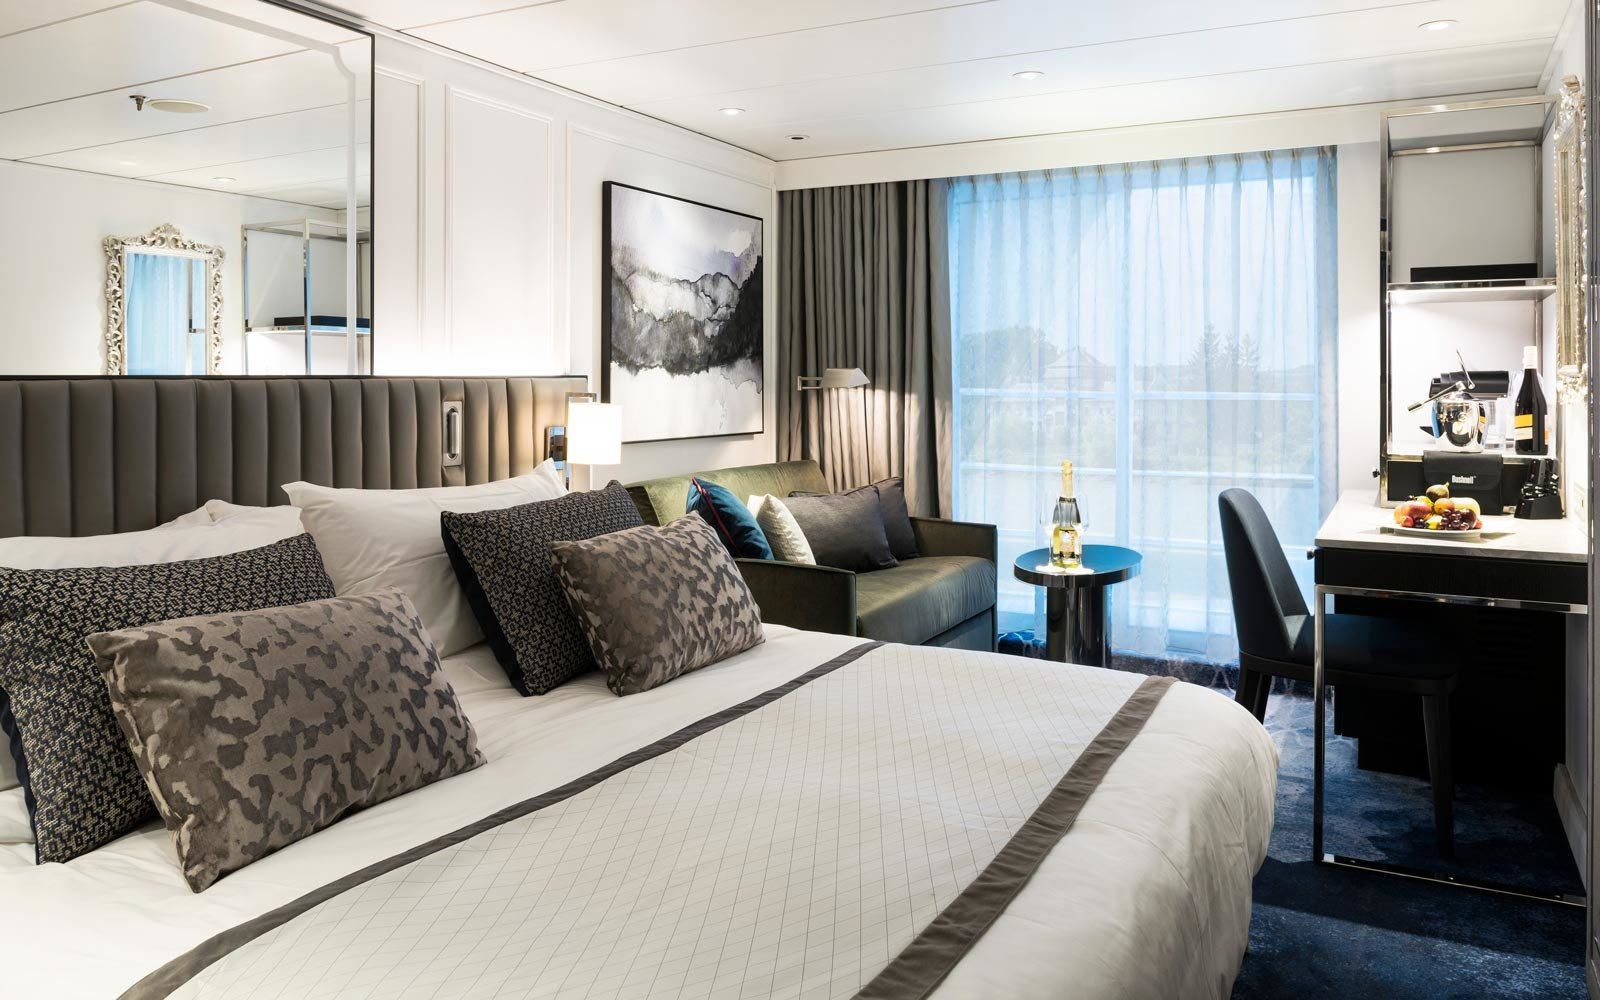 The Staterooms Are High-Tech